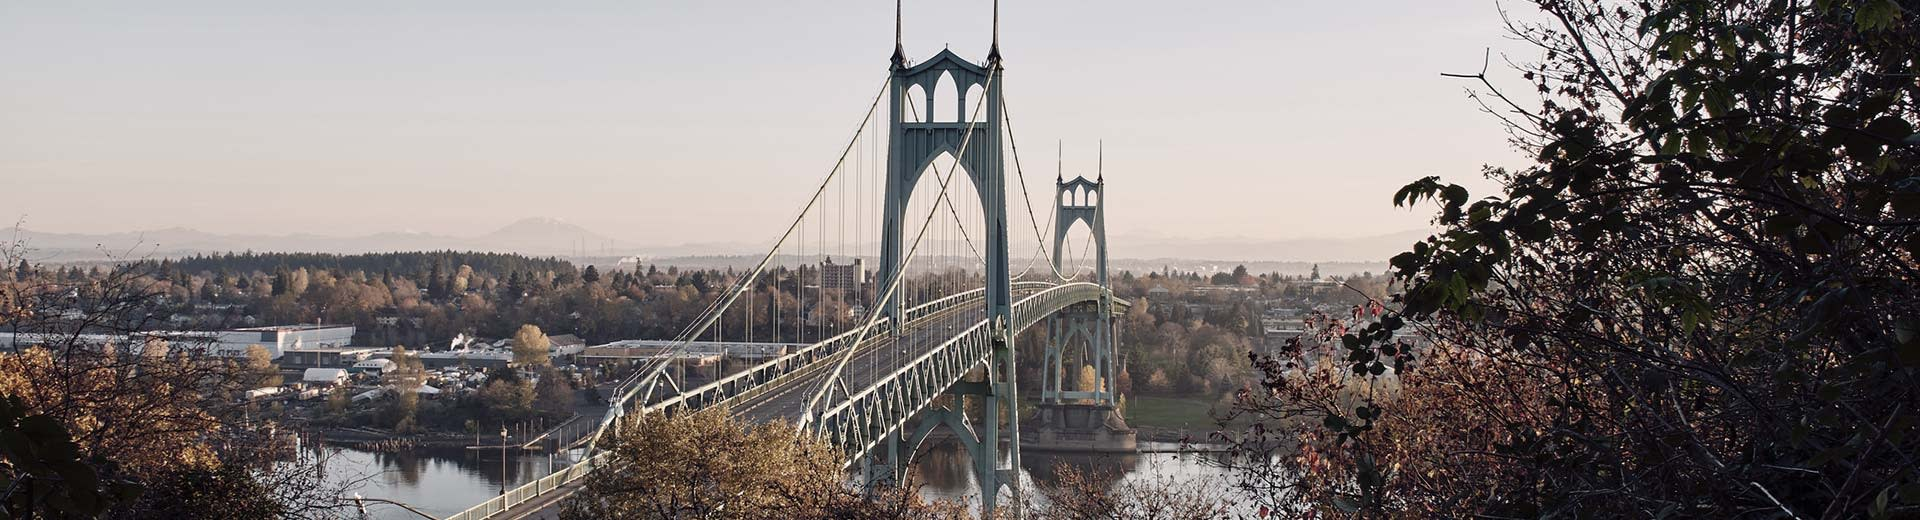 A suspension bridge stretches across a river in Portland, with plenty of trees and green space